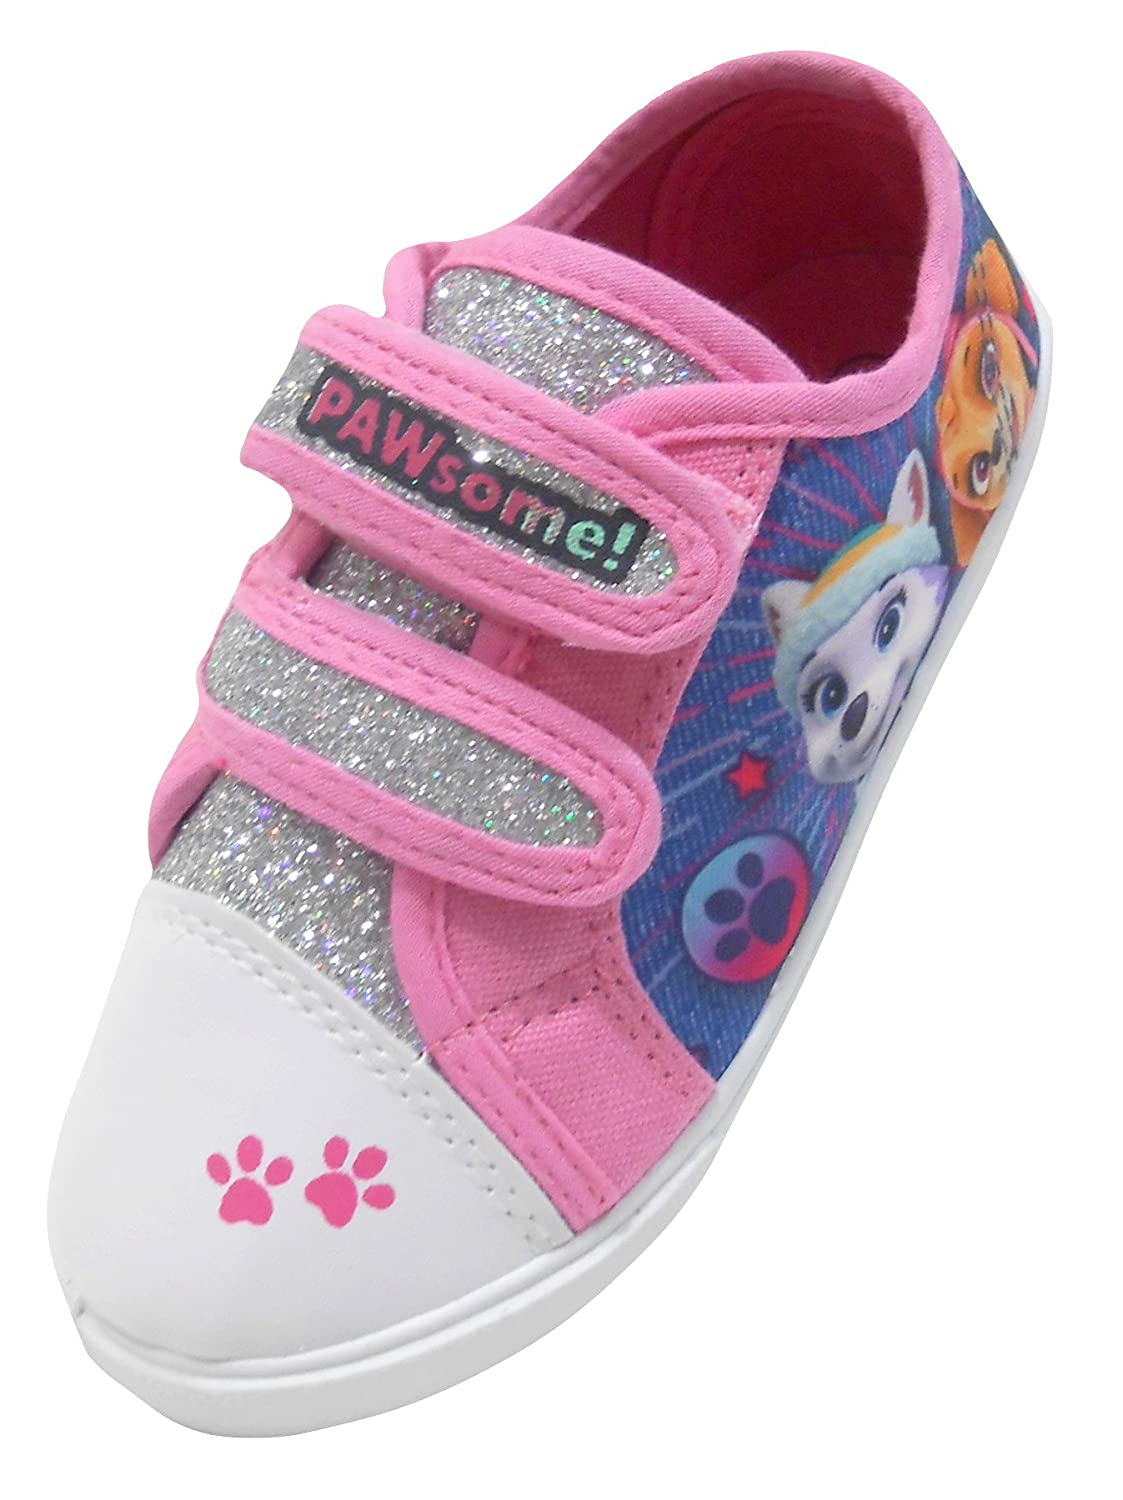 Paw Patrol Pink with Silver Glitter Hook and Loop Trainers UK Sizes 5-10